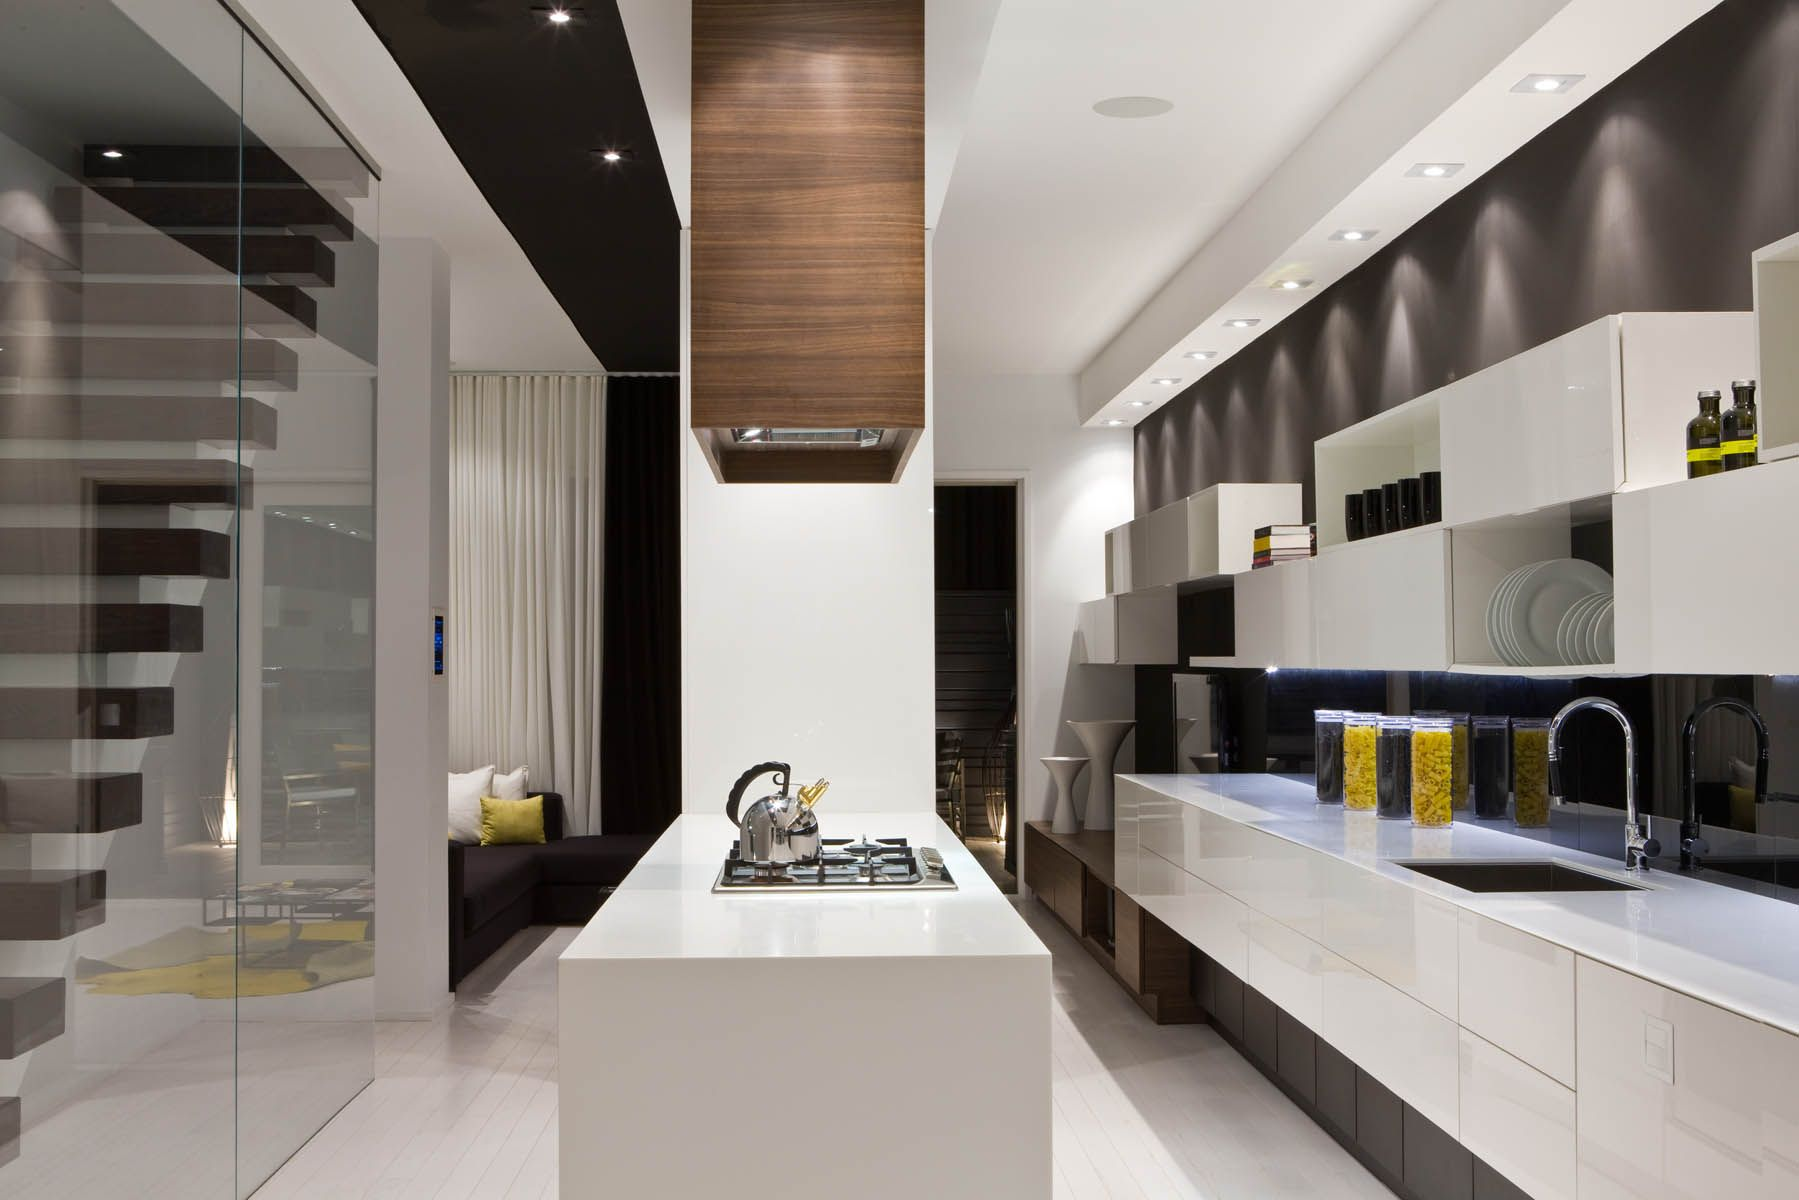 Trinity bellwoods town homes by cecconi simone